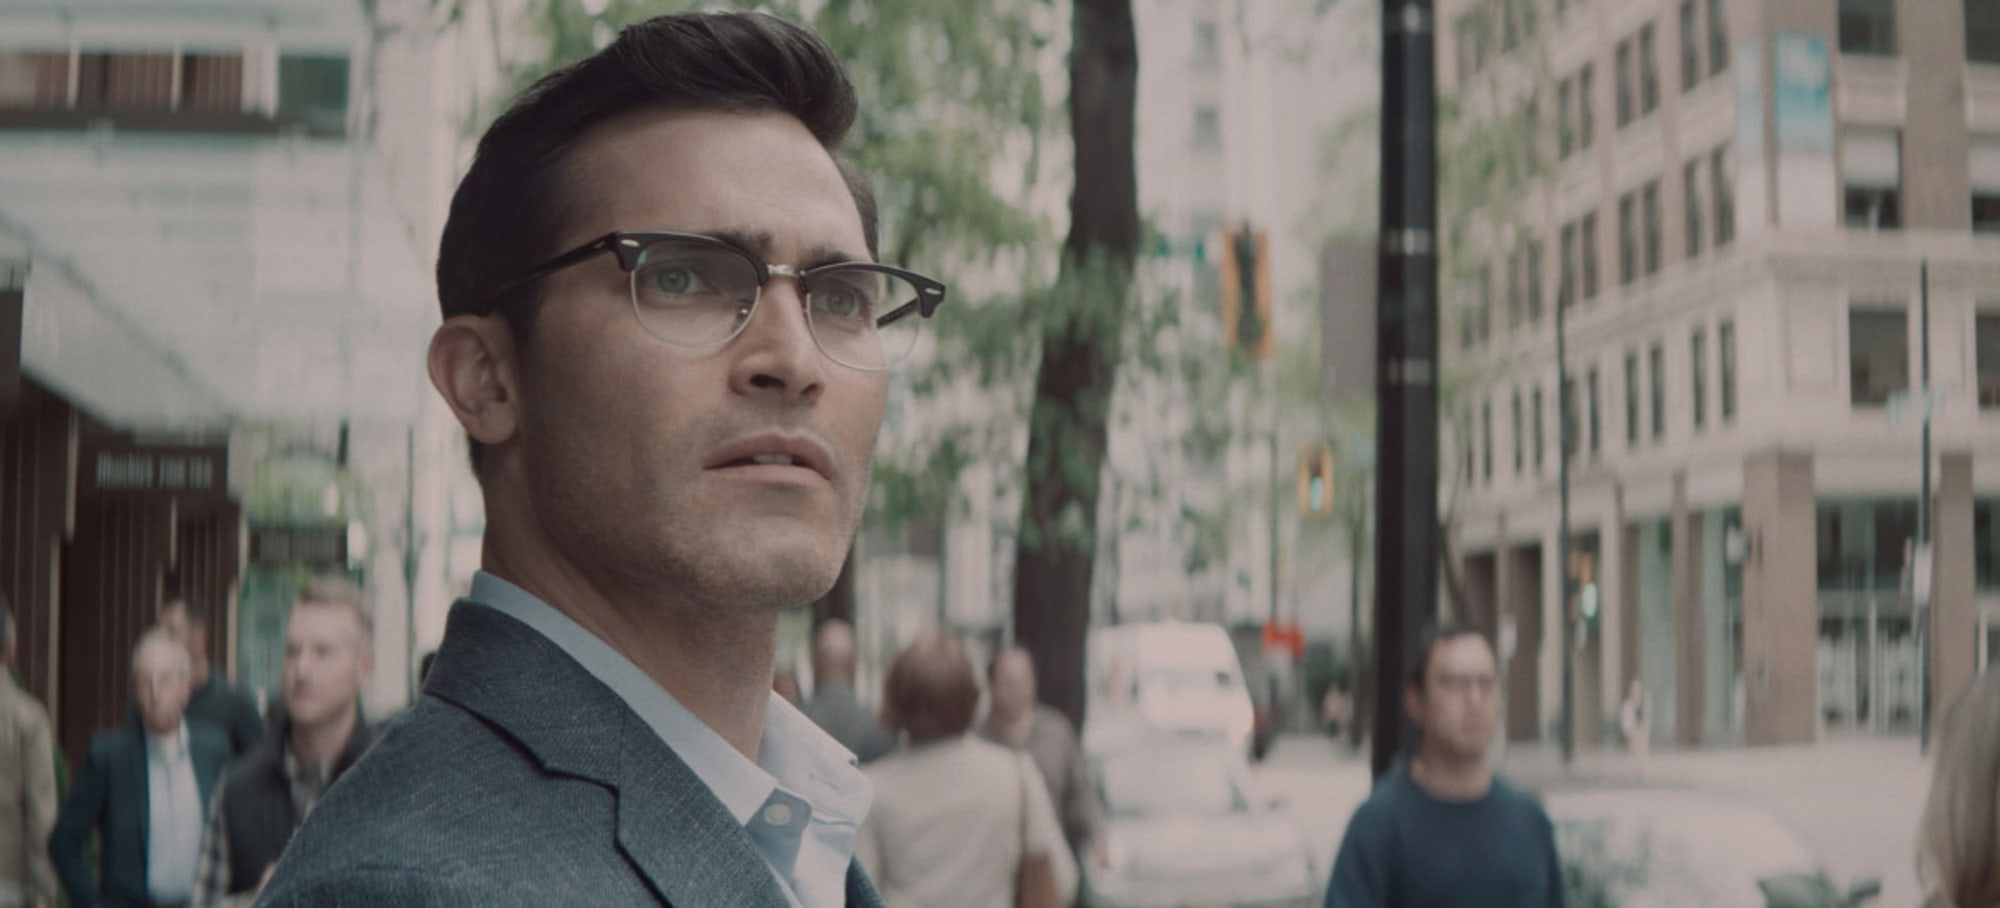 Superman and Lois season 1, episode 11 review: A Brief Reminiscence In-Between Cataclysmic Events